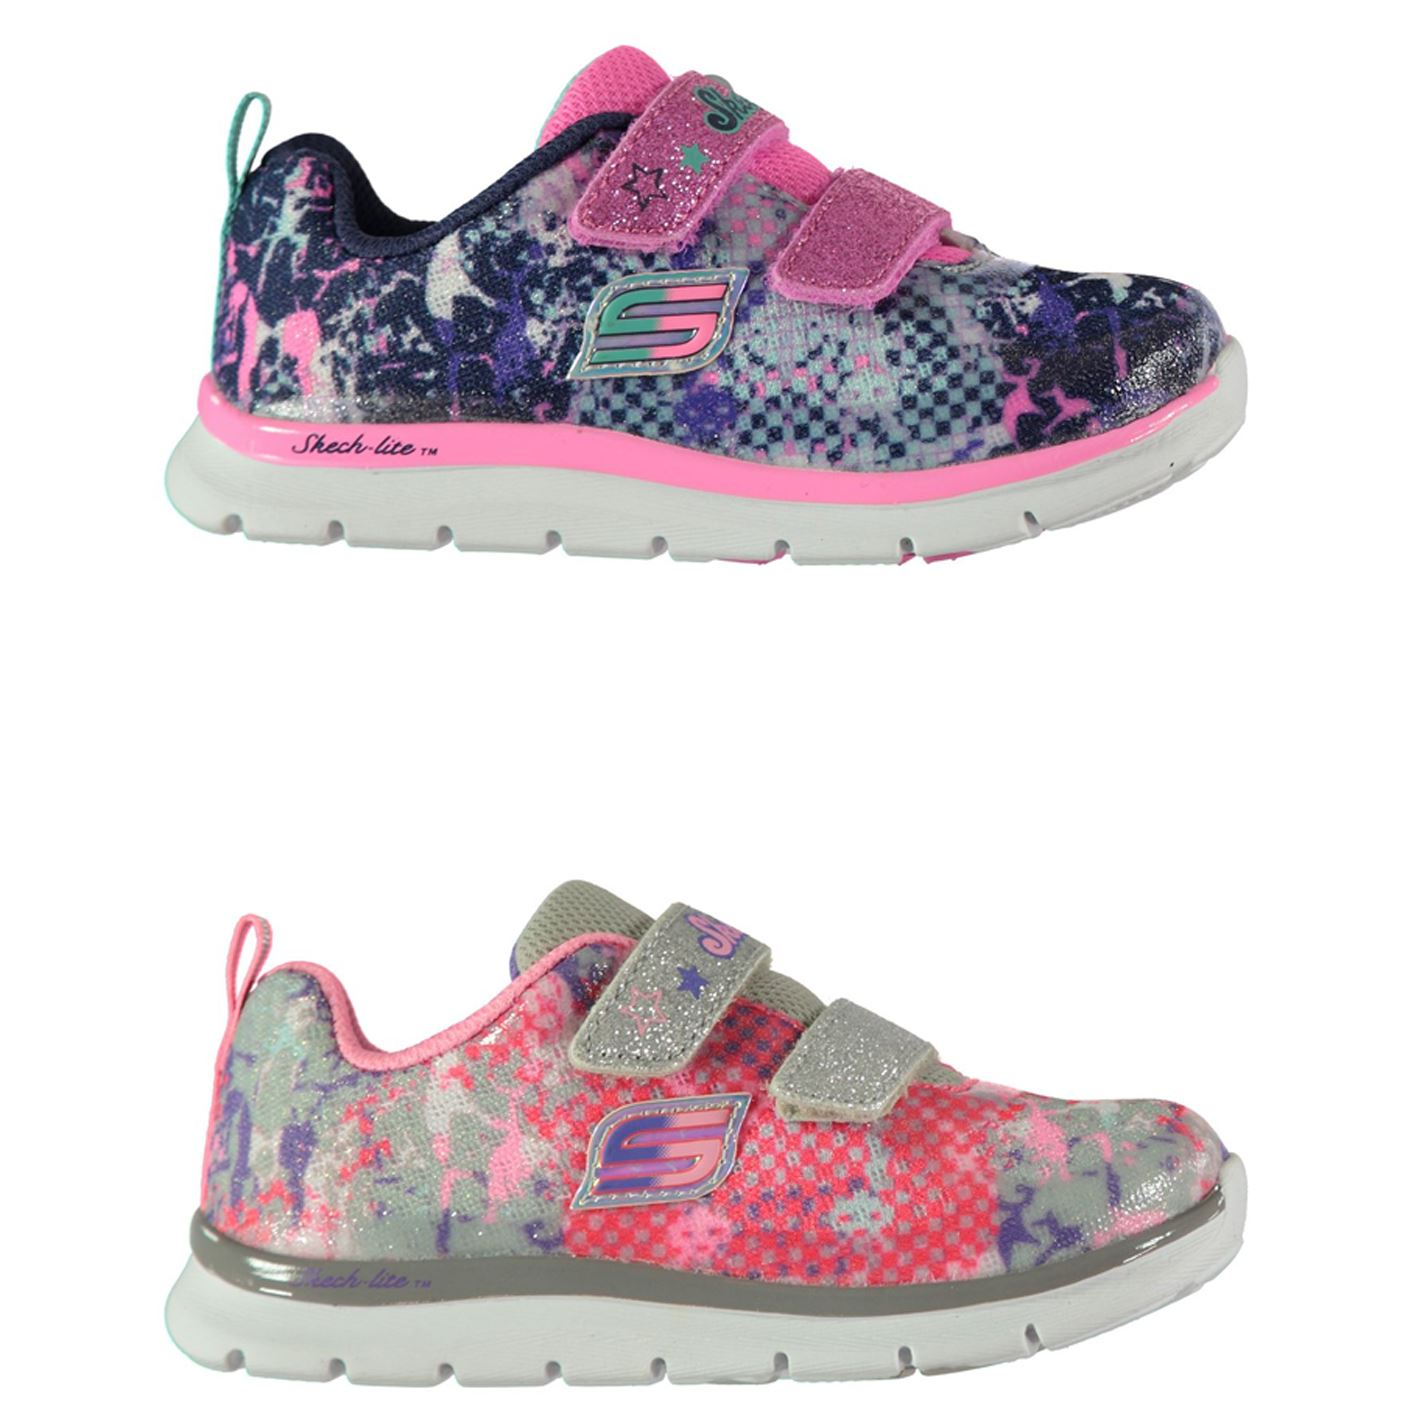 Details about Skechers Skech Lite Trainers Infant Girls Shoes Footwear